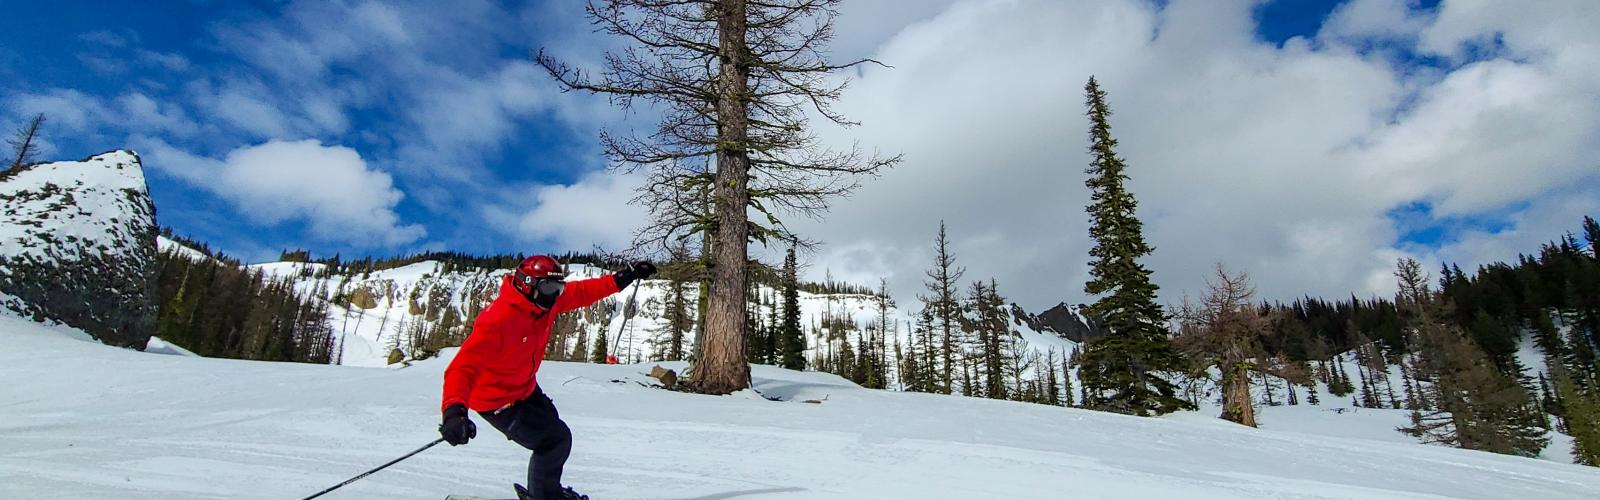 Skier going by on fresh corduroy with bomber cliffs and trees in the background